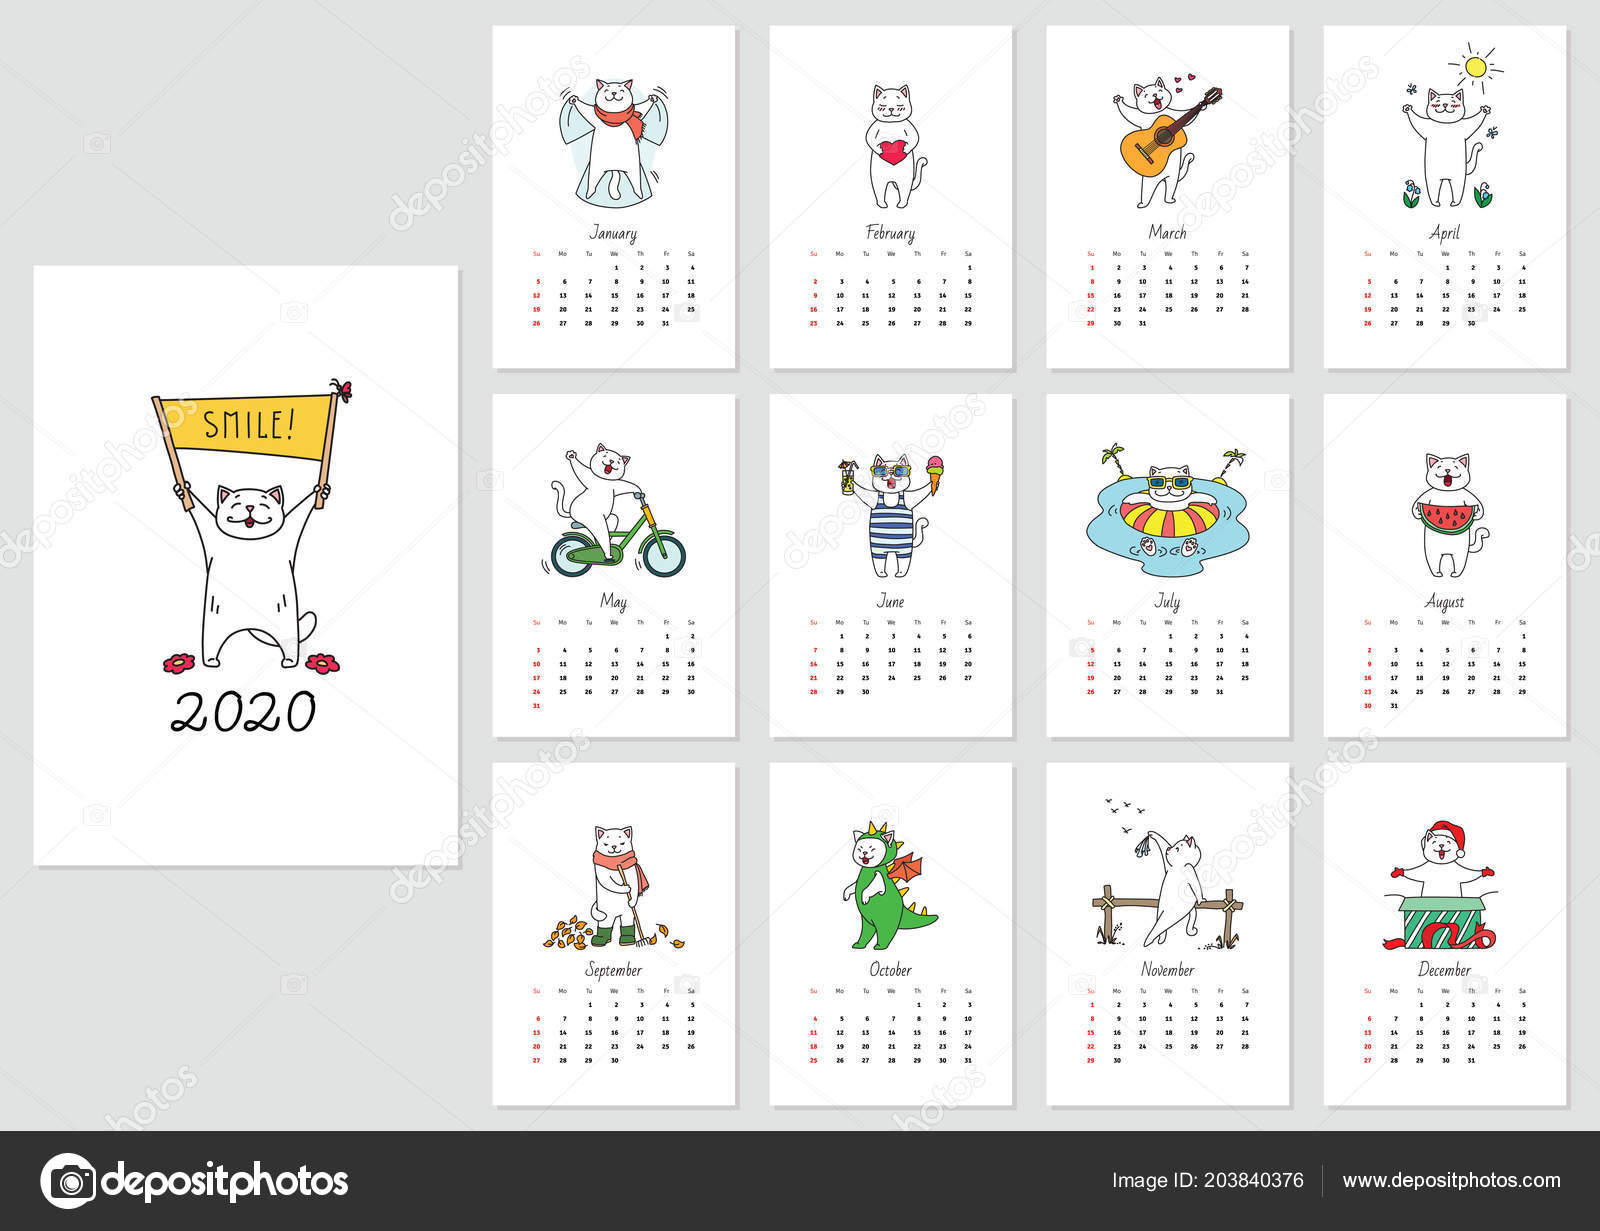 Calendrier Chat 2020.Modele Calendrier 2020 Mensuel Avec Chat Drole Beneficiant